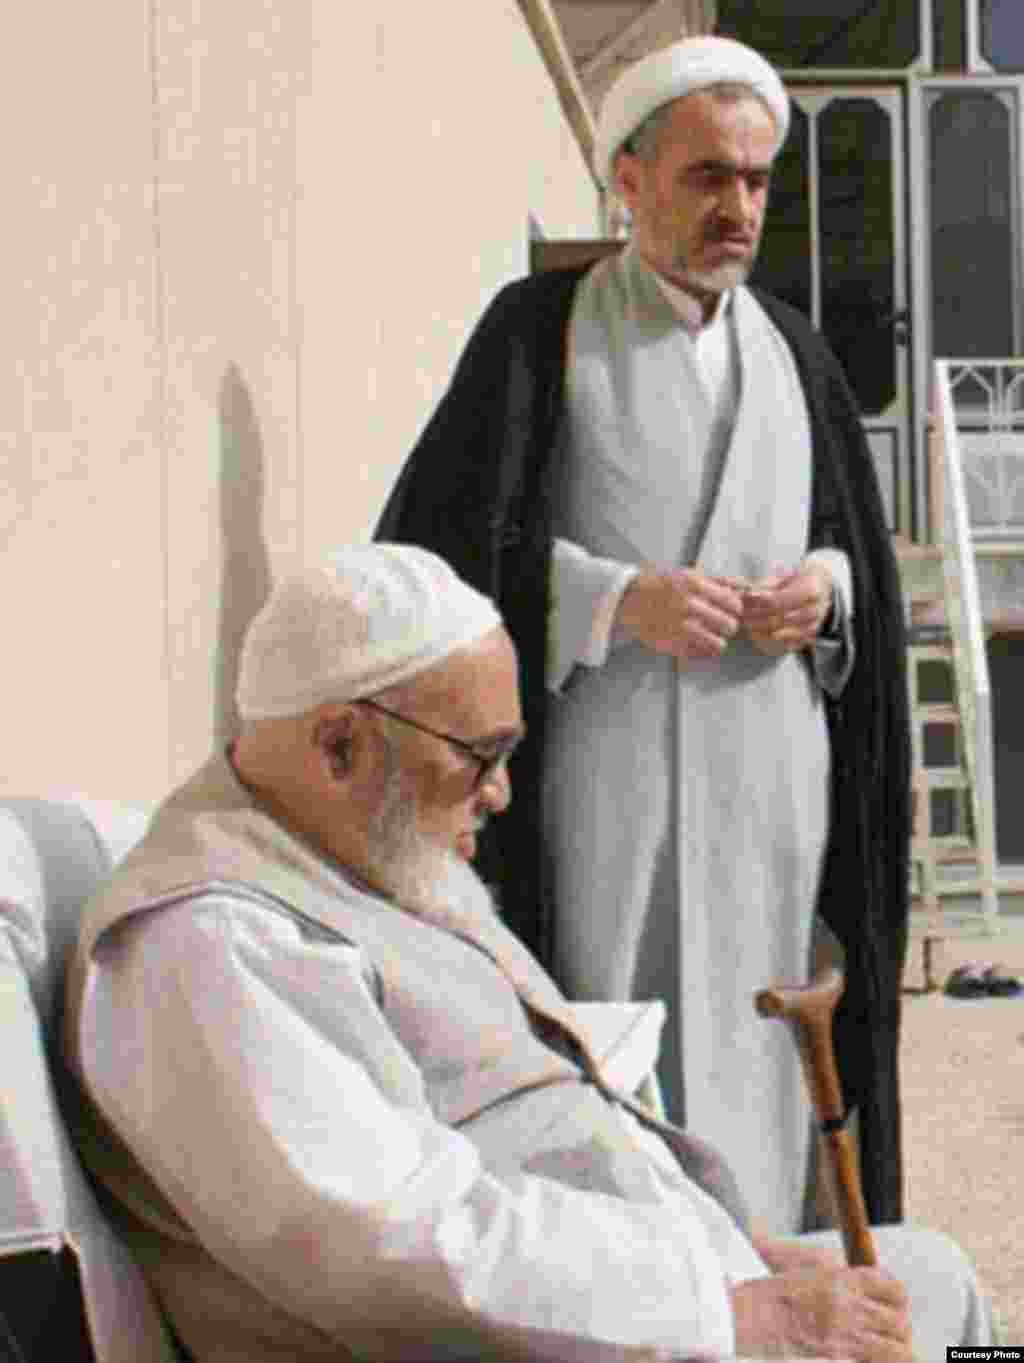 Iran -- major shi'ite cleric of Iran, Ayatollah Hossein Ali Montazeri with his son, undated - Major shi'ite clerics of Iran, Ayatollah Hossein Ali Montazeri with his son http://www.amontazeri.com/farsi/pic_display.asp?id=858